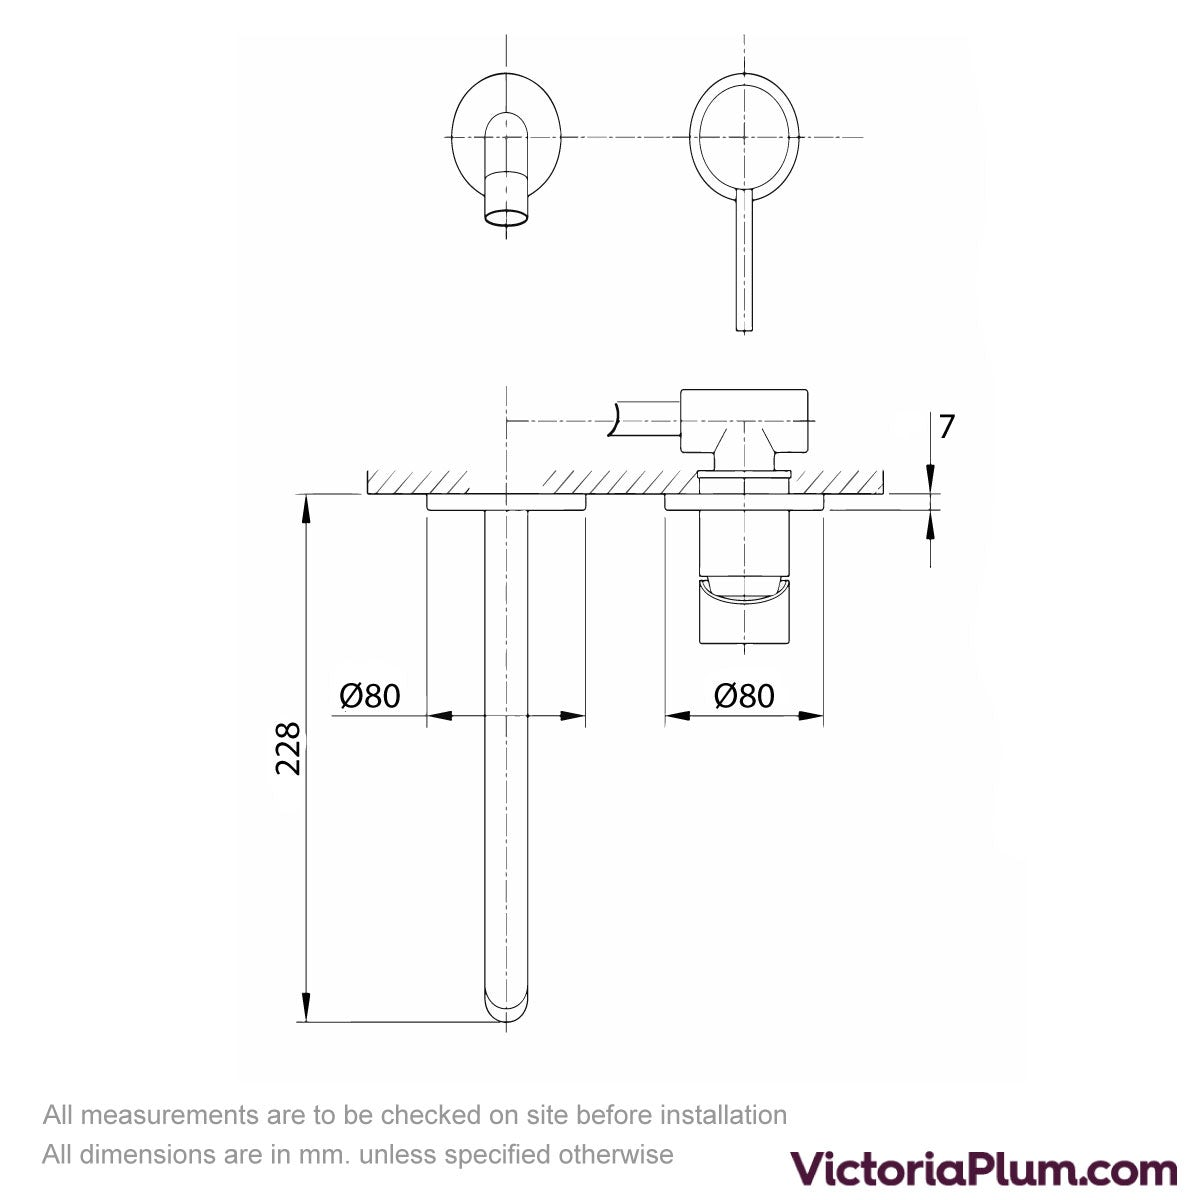 Dimensions for Mode Spencer round wall mounted brushed nickel bath mixer tap